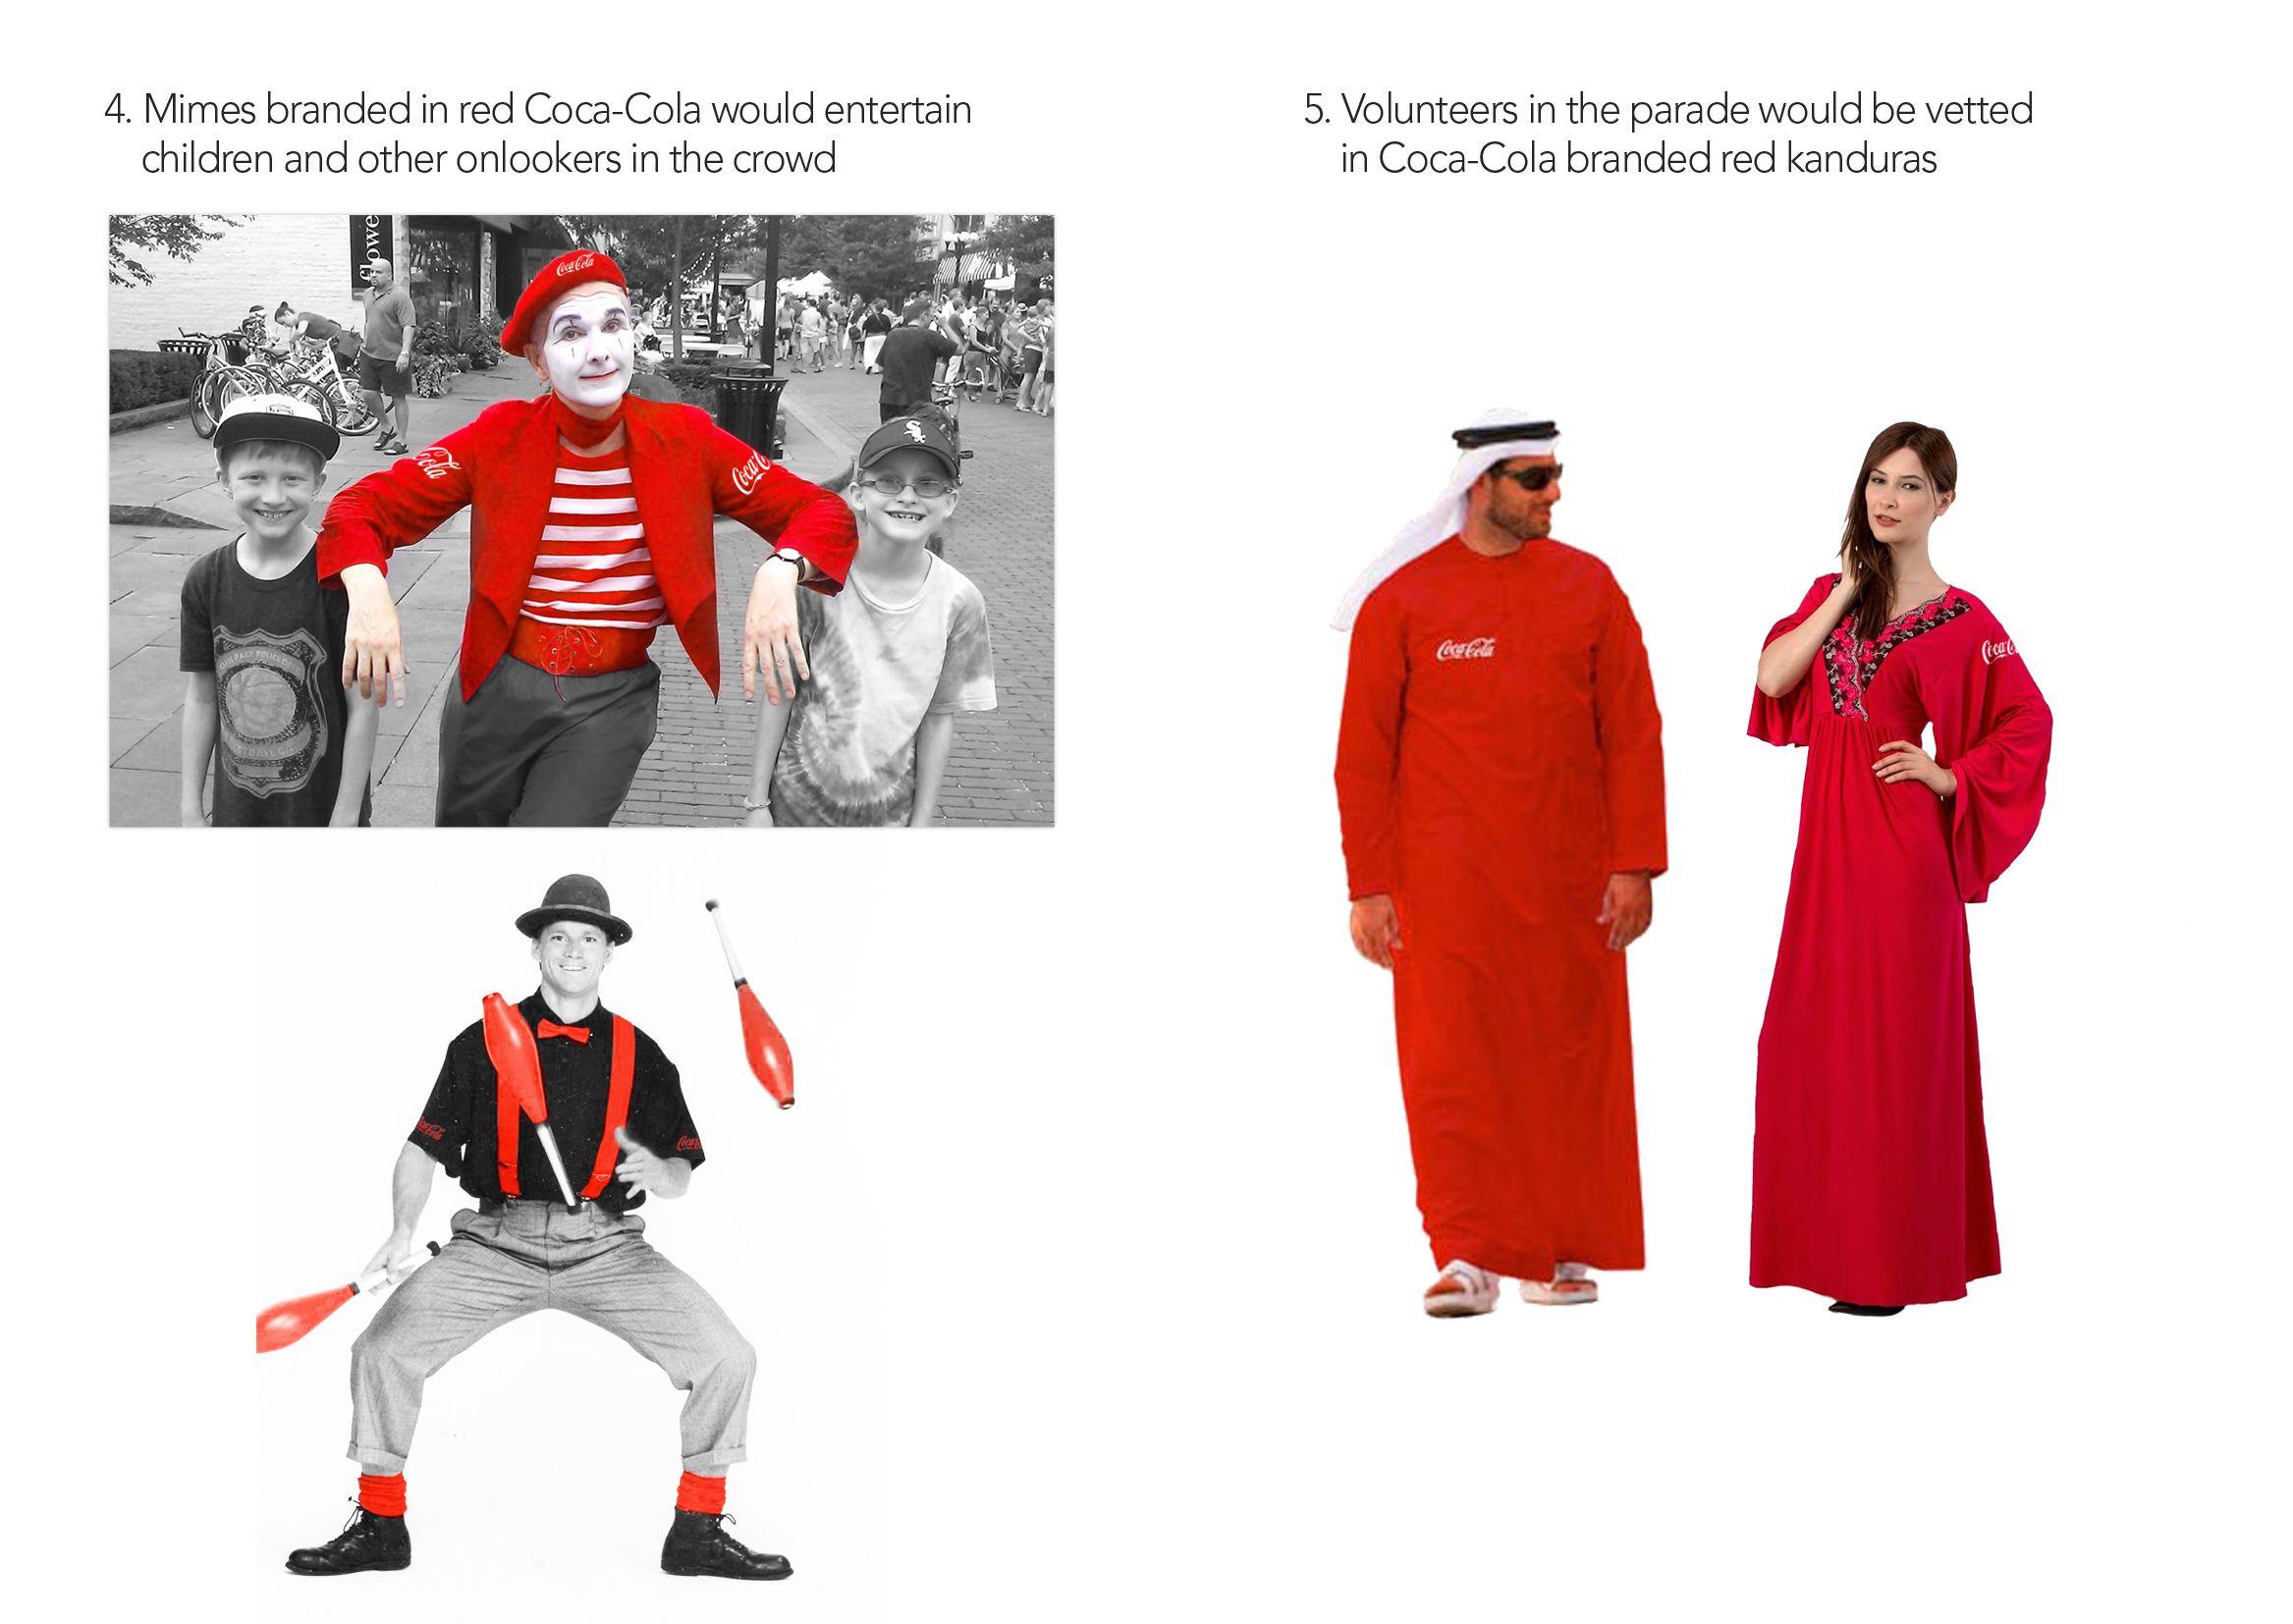 CocaCola-UAE40yrs-Campaign-mimes-and-volunteers